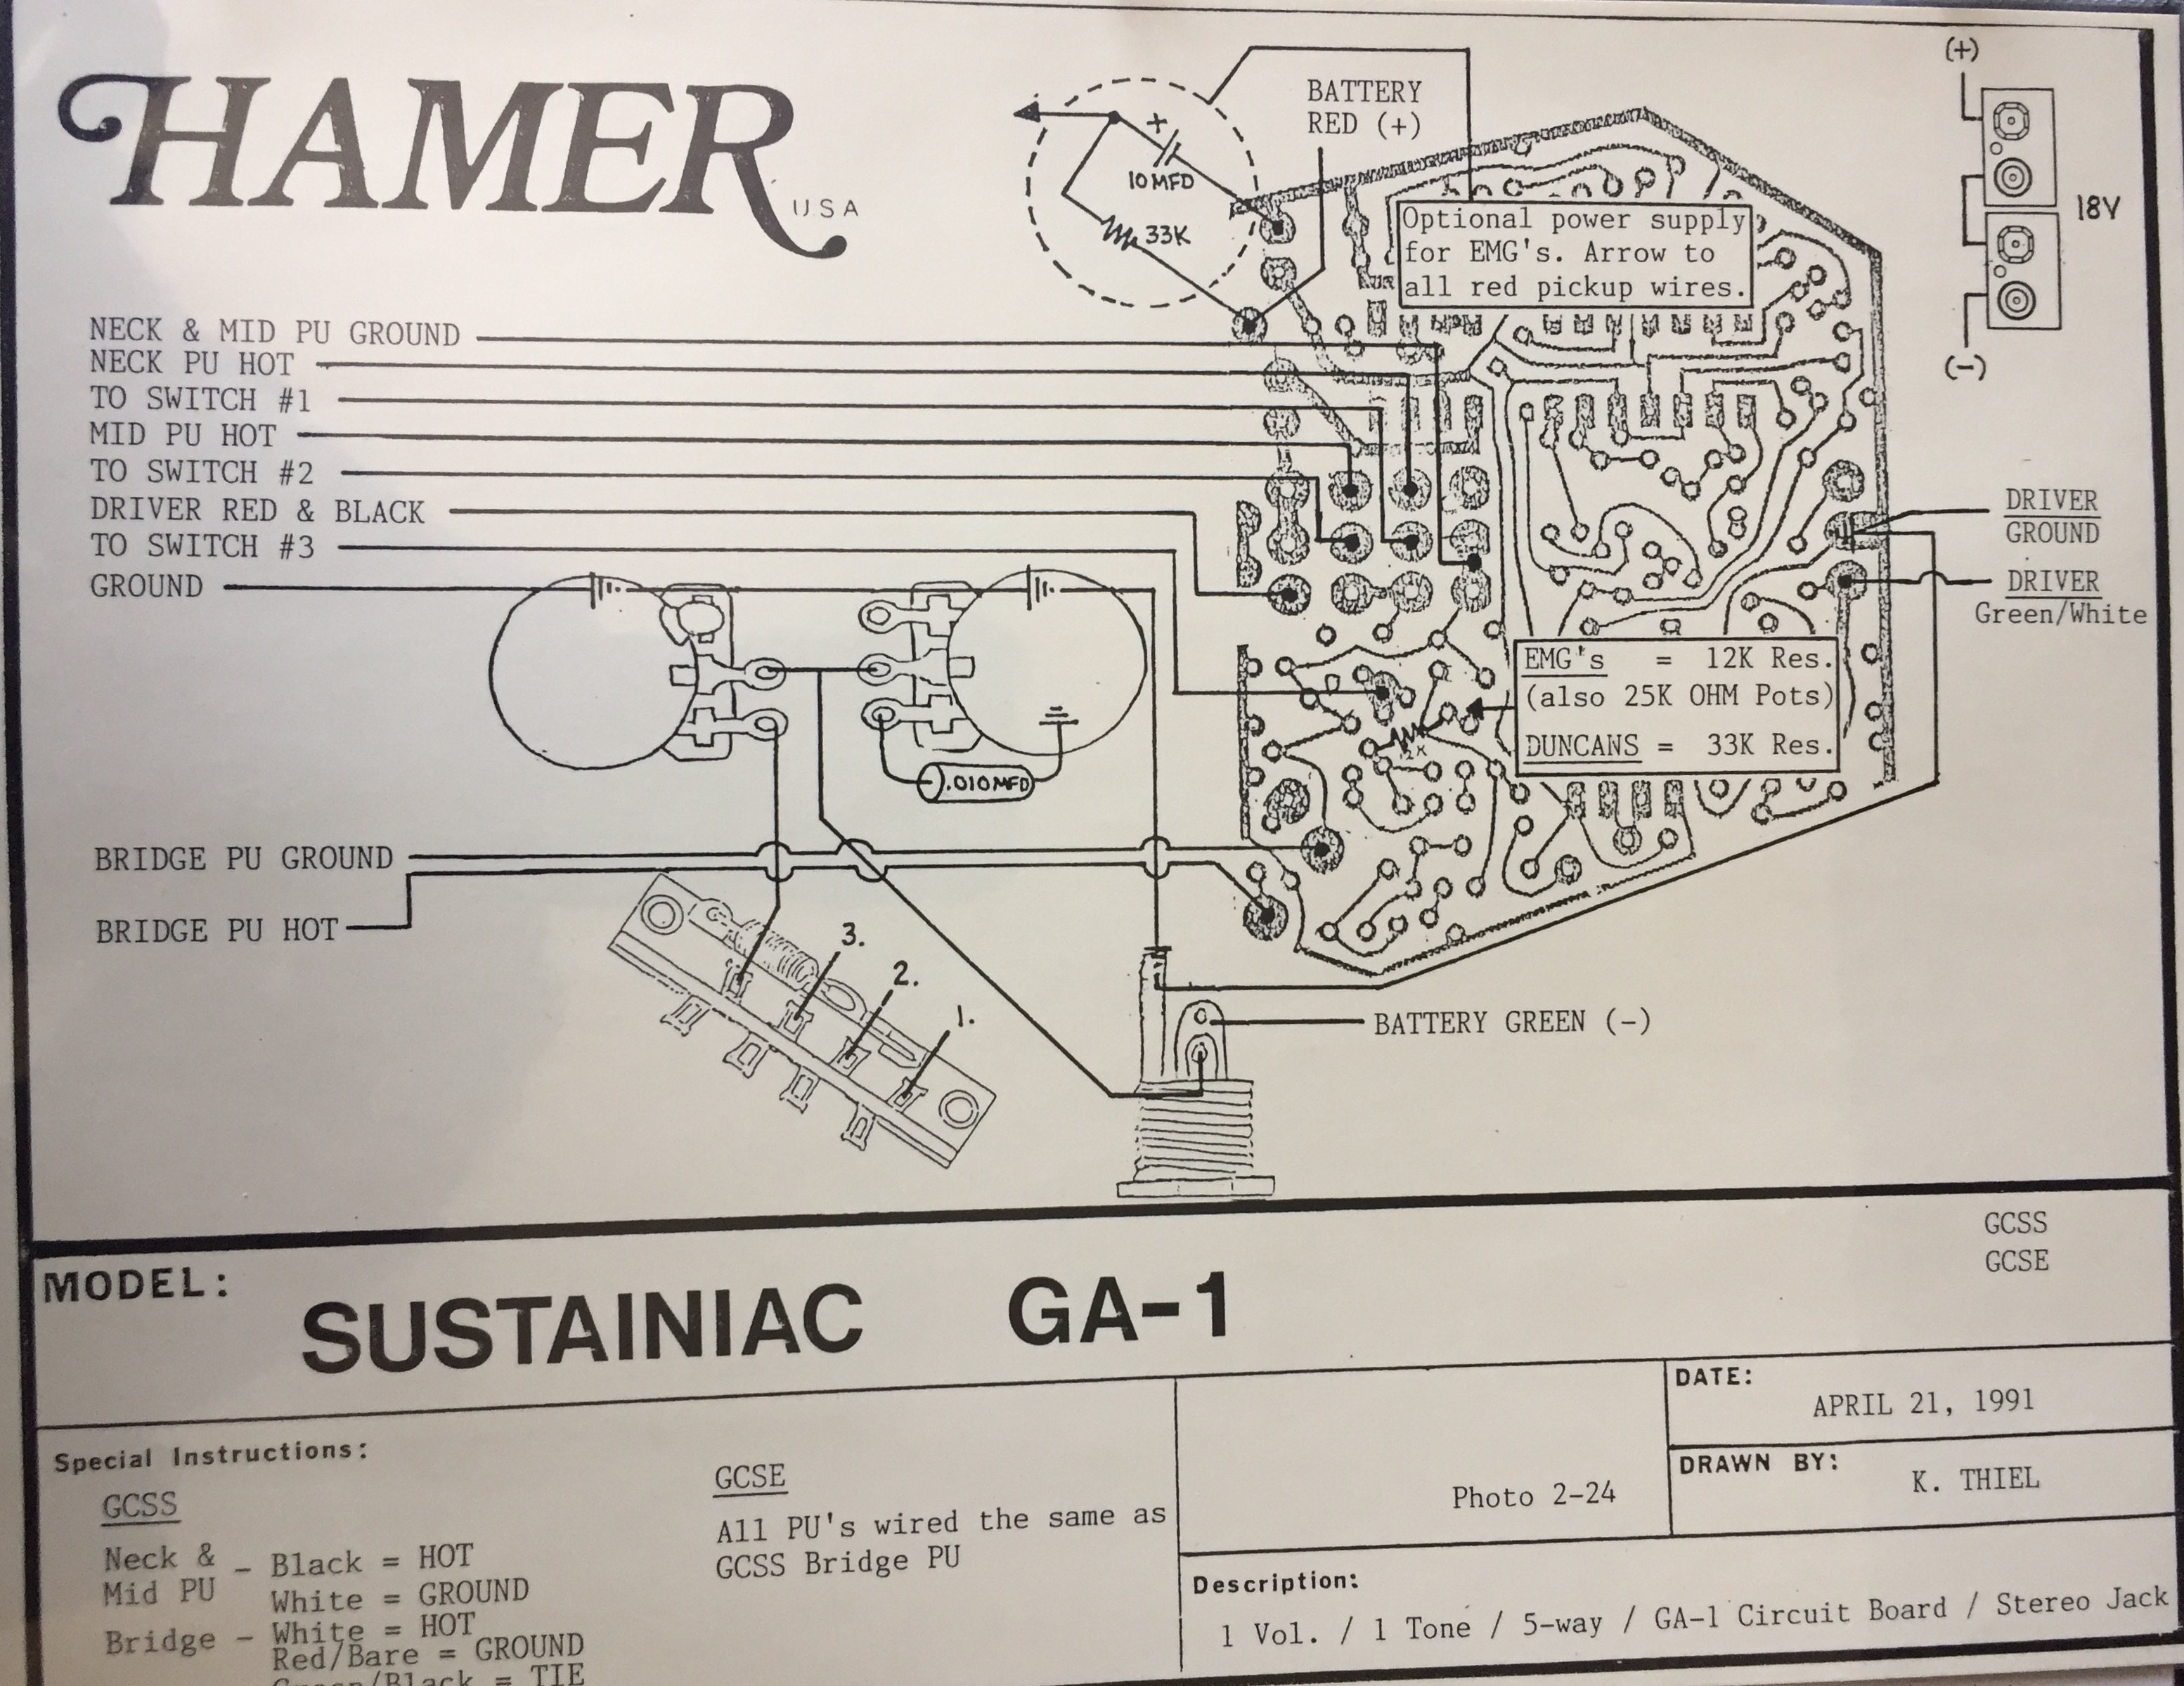 hamer chaparral wiring diagram hamer fan club messageboard hamer rh hamerfanclub com Basic Electrical Wiring Diagrams HVAC Wiring Schematics